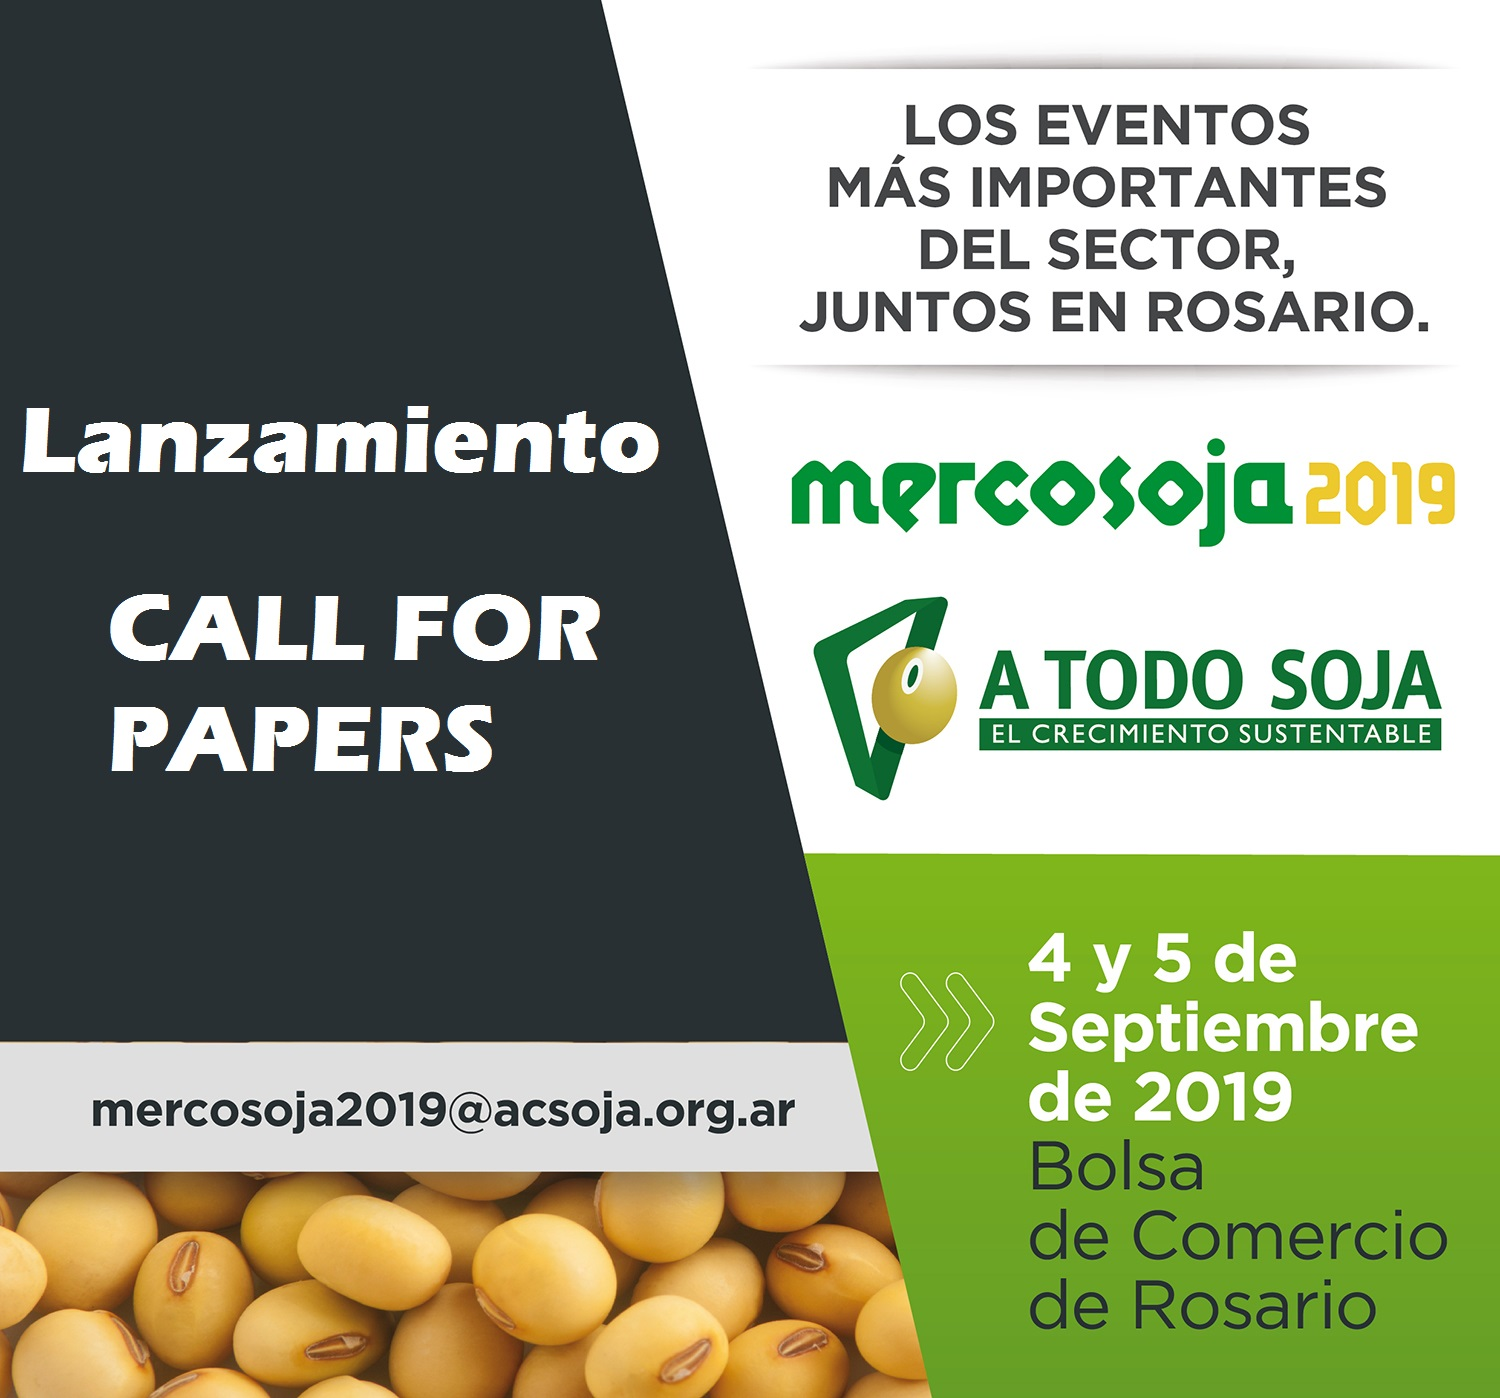 #Mercosoja2019 Lanzamiento Call for Papers